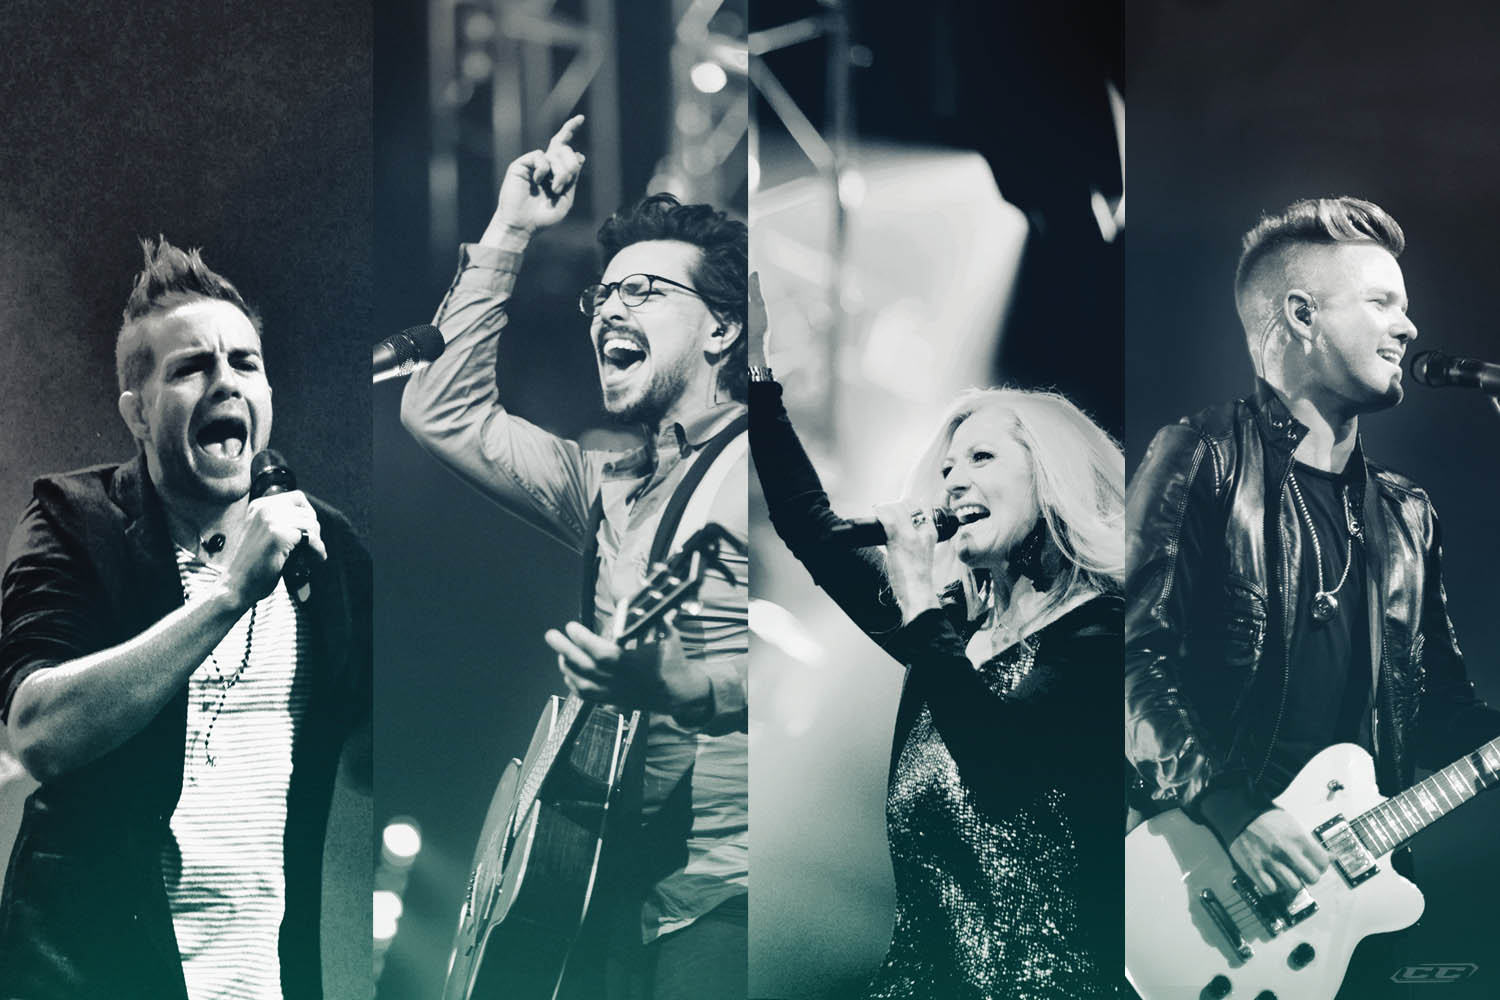 Planetshakers - Limitless 2013 Band Members